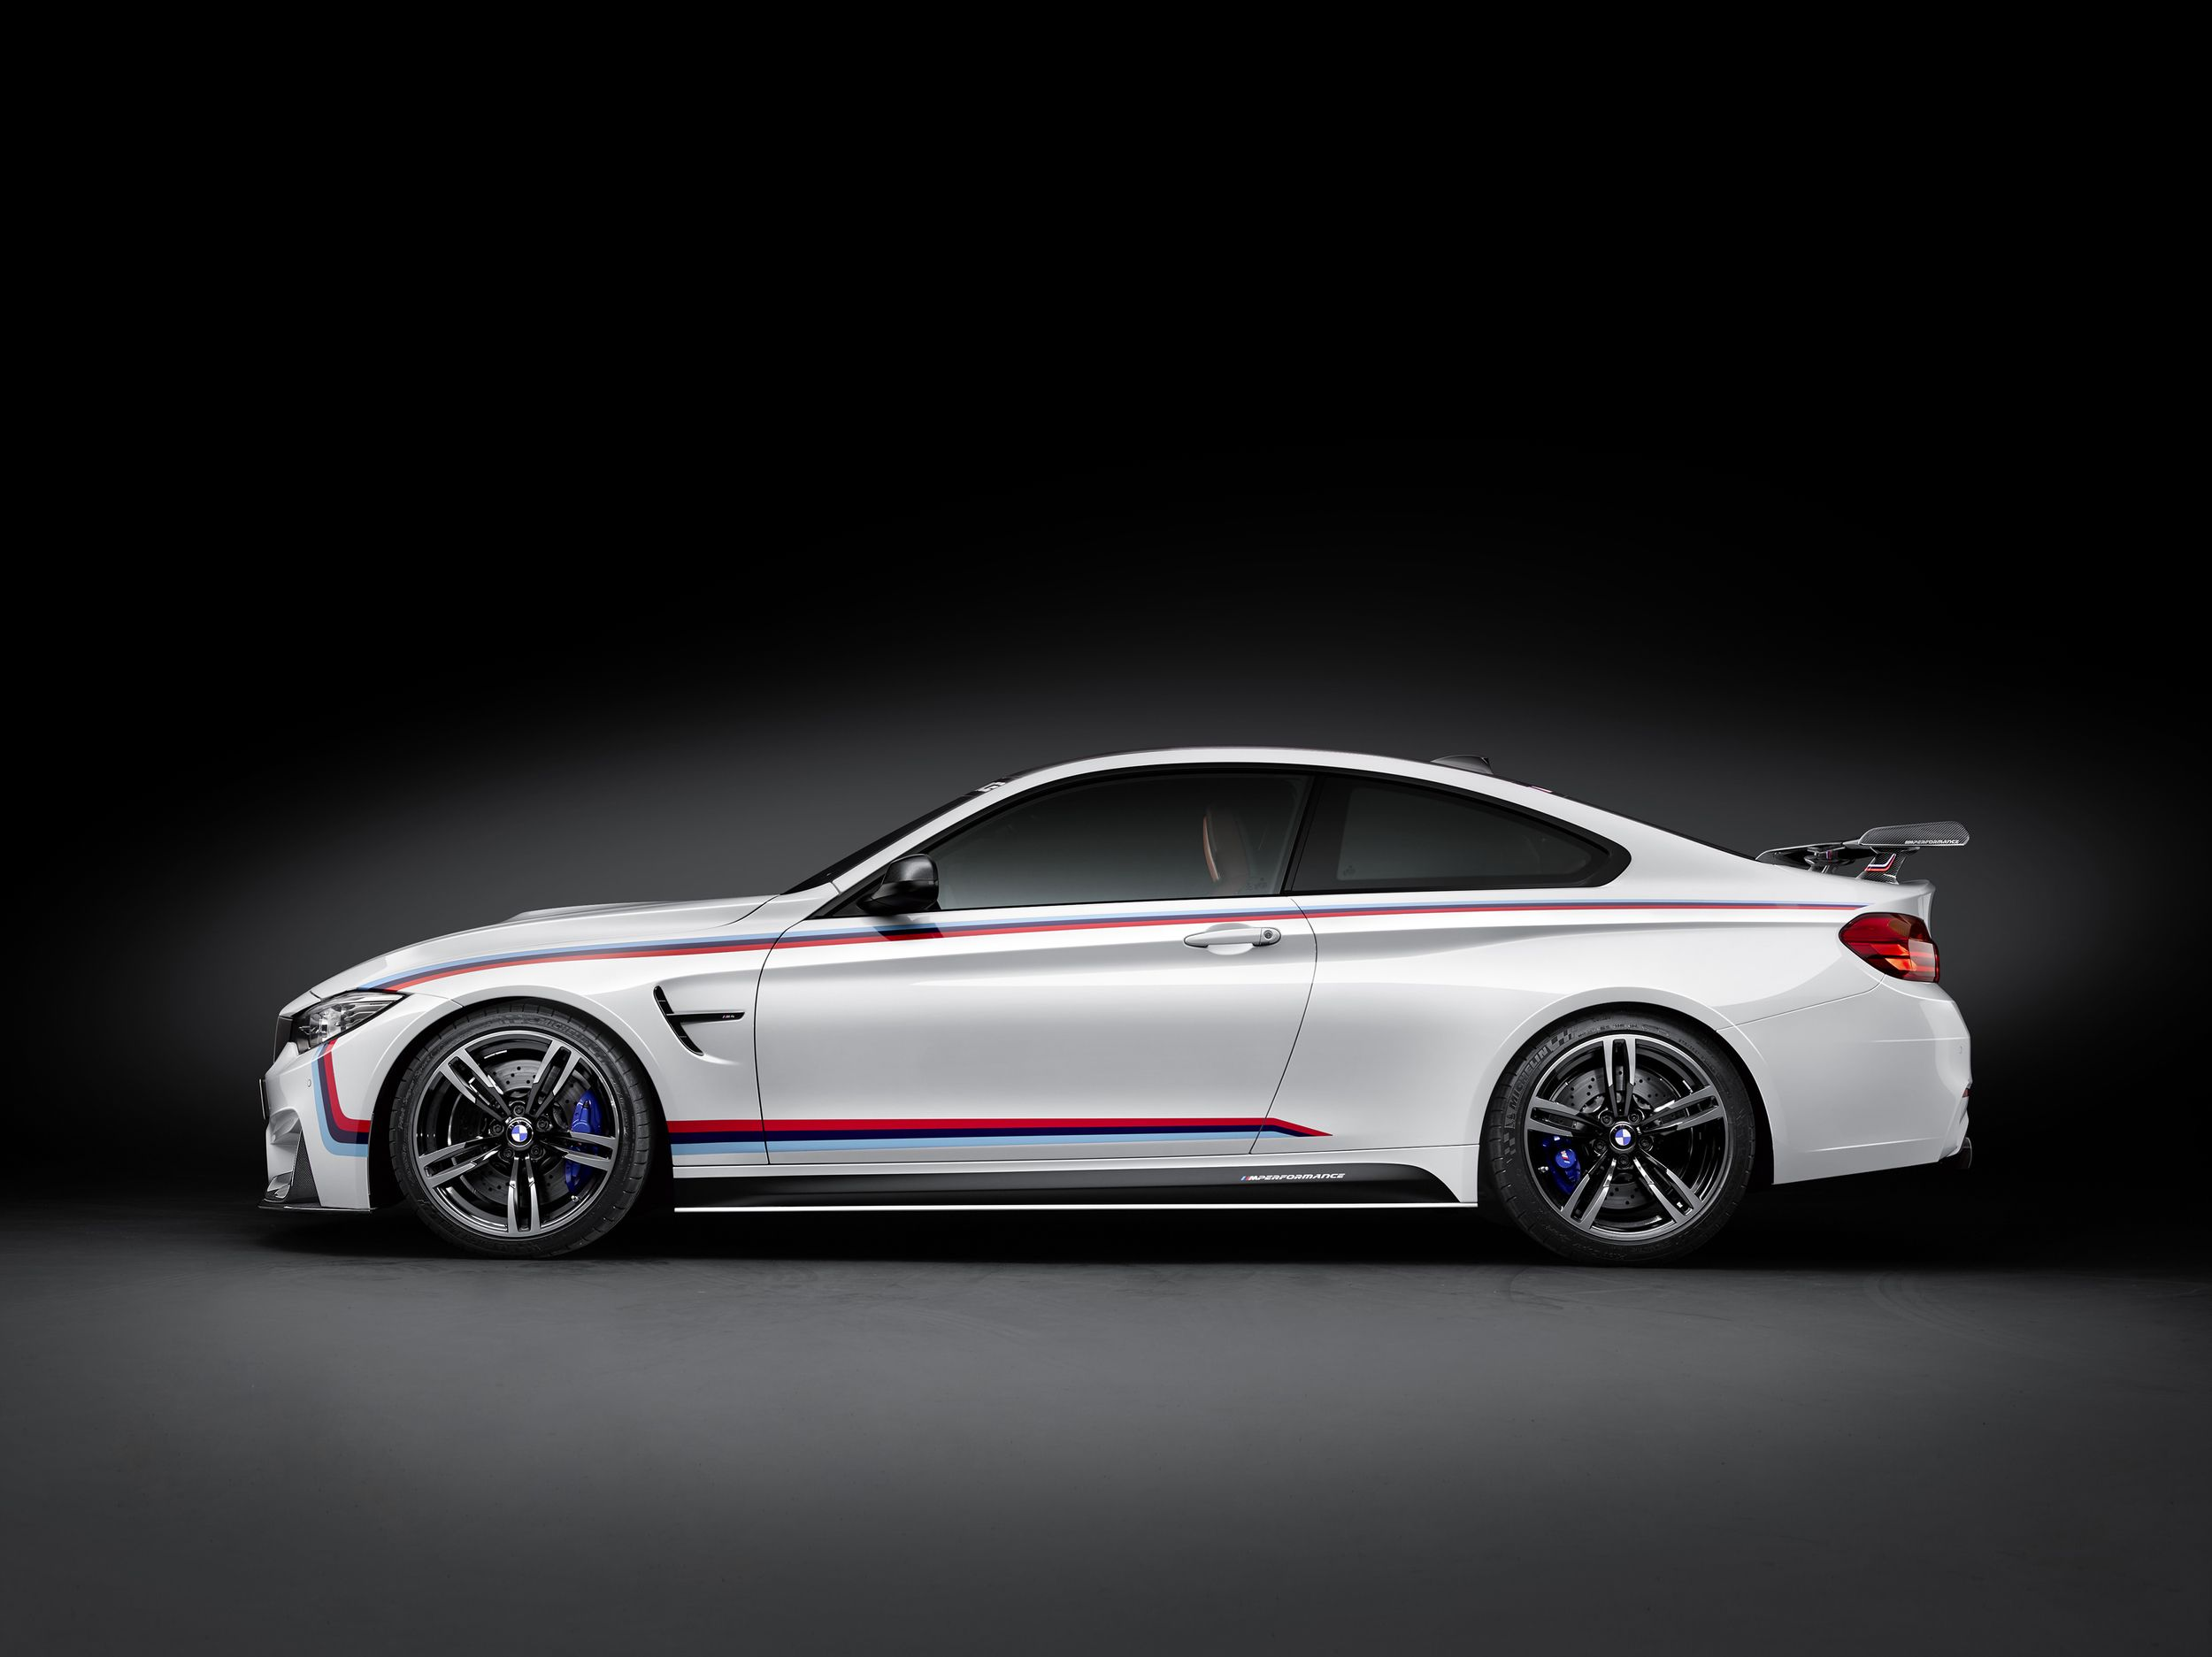 Bmw Showcases M2 M4 With M Performance Parts At Sema With Images